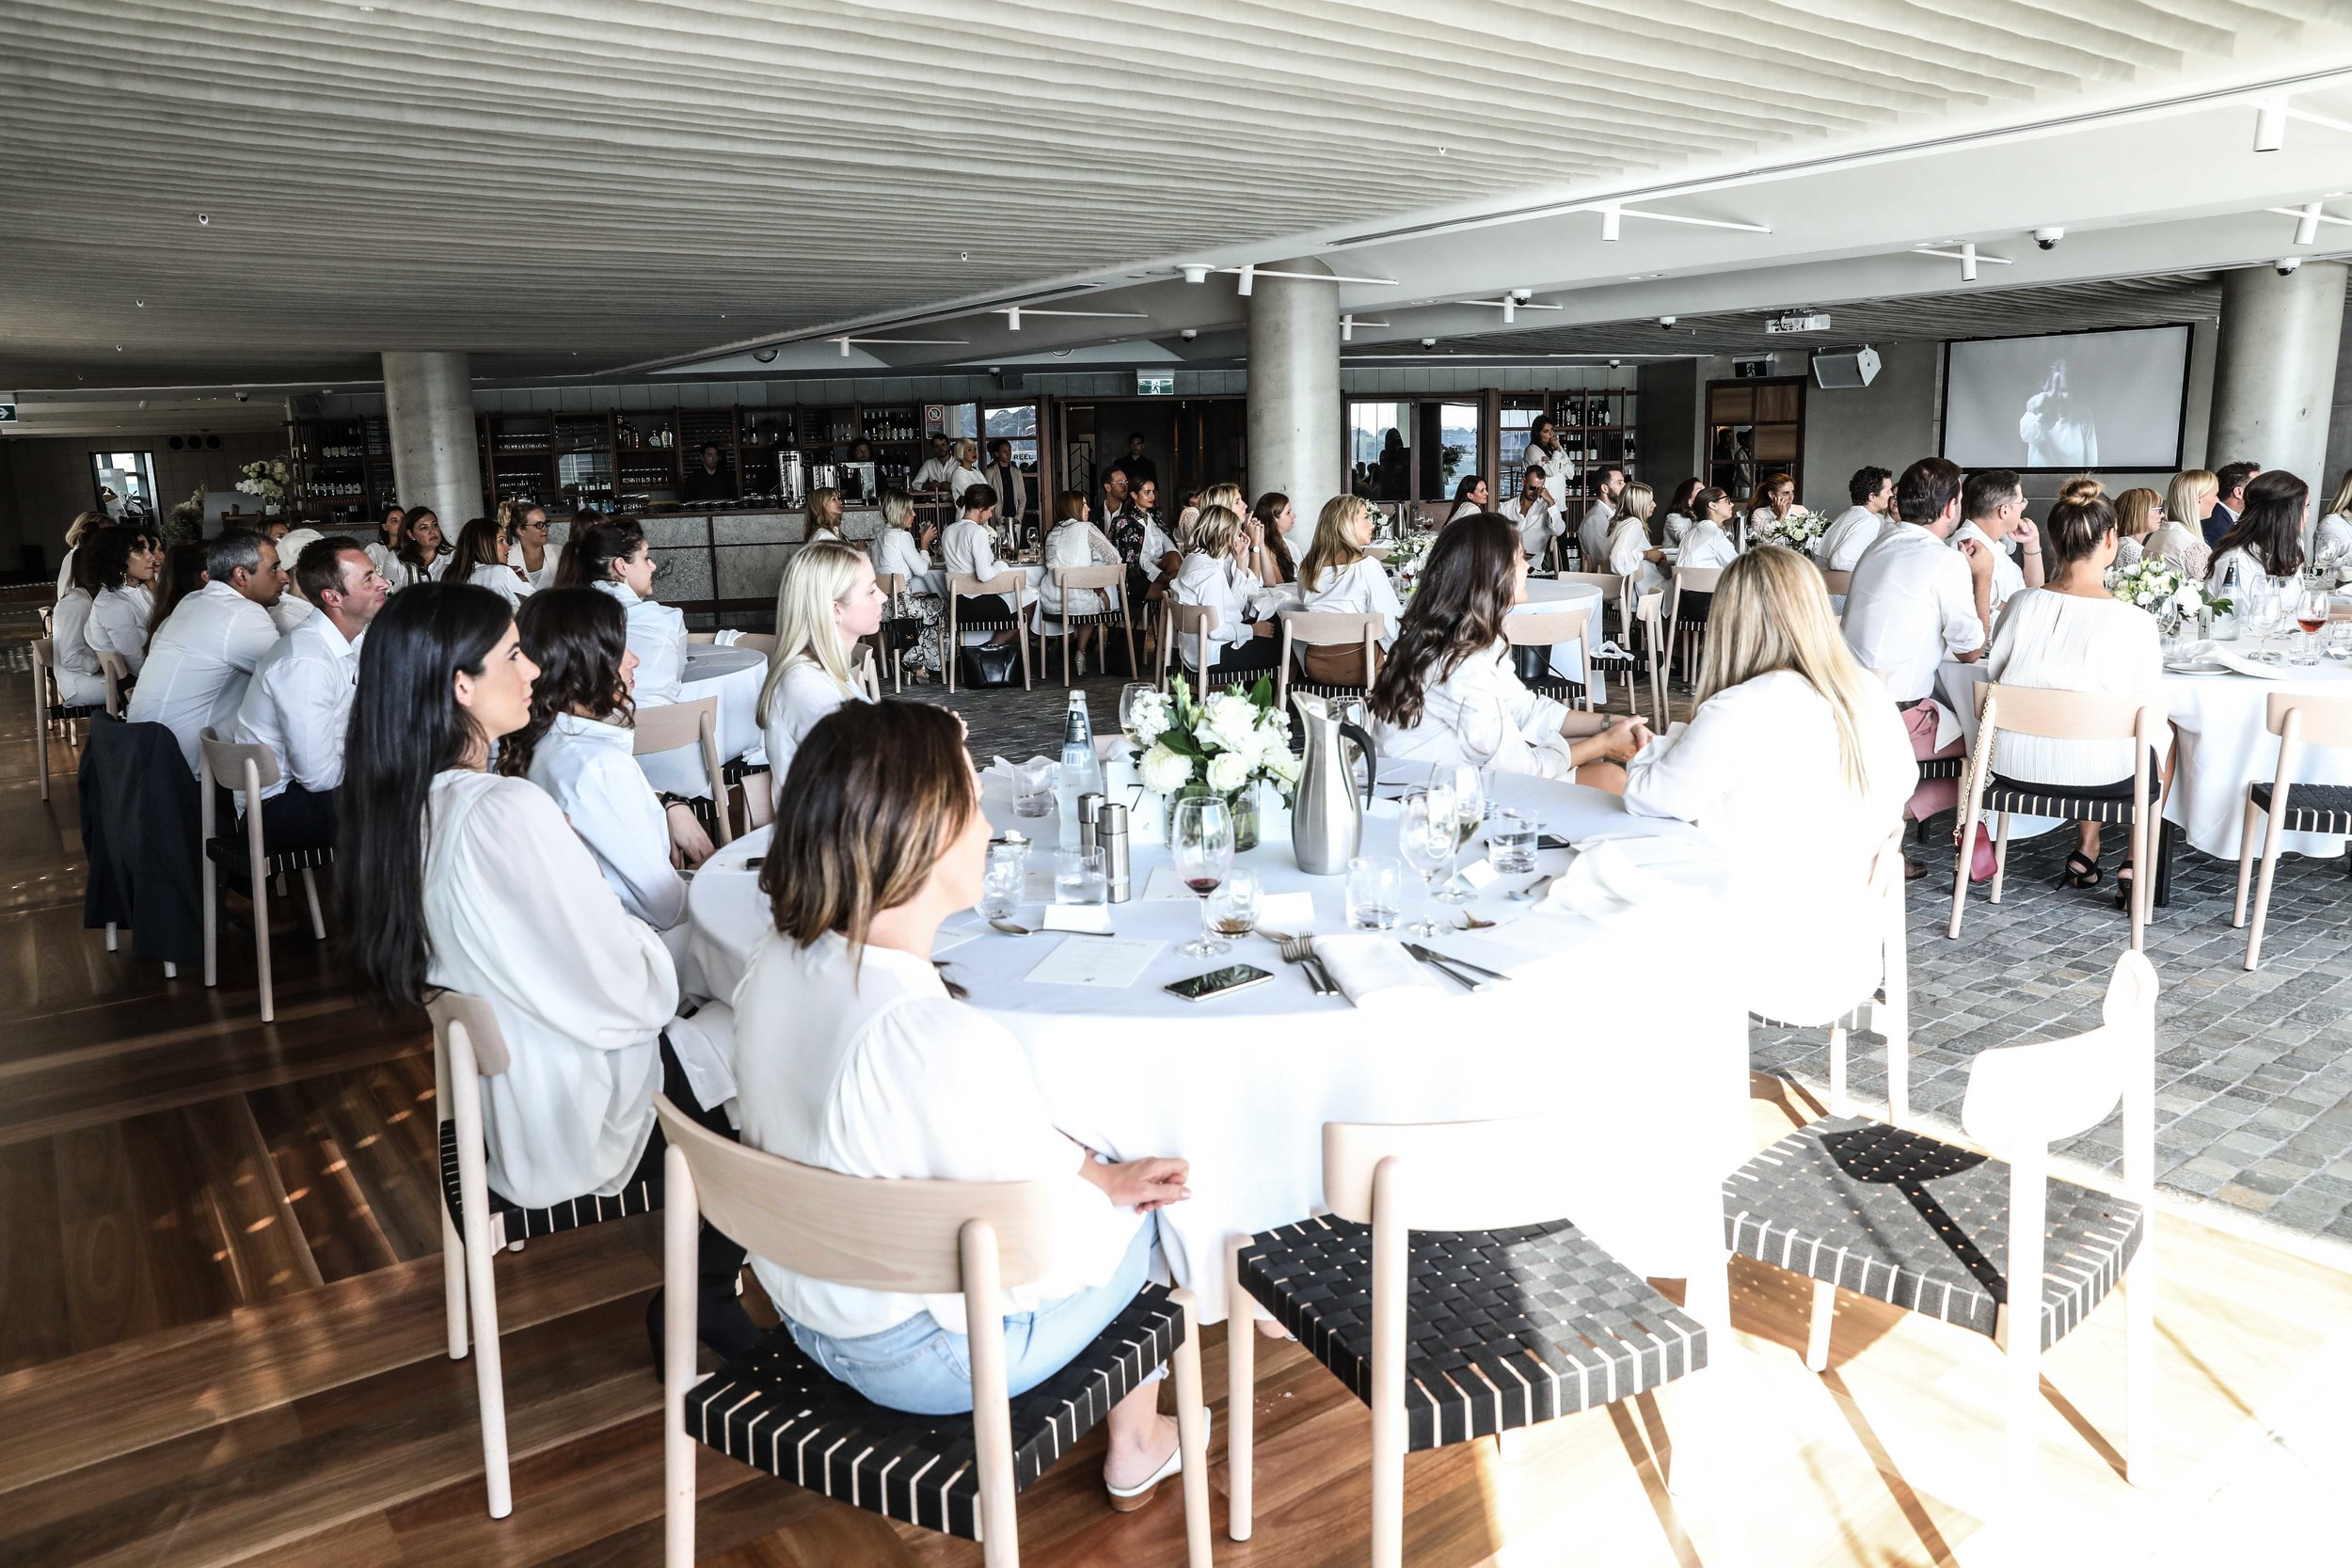 kate-and-co-projects-witchery-ocrf-white-shirt-campaign-2018-guests-2.jpg